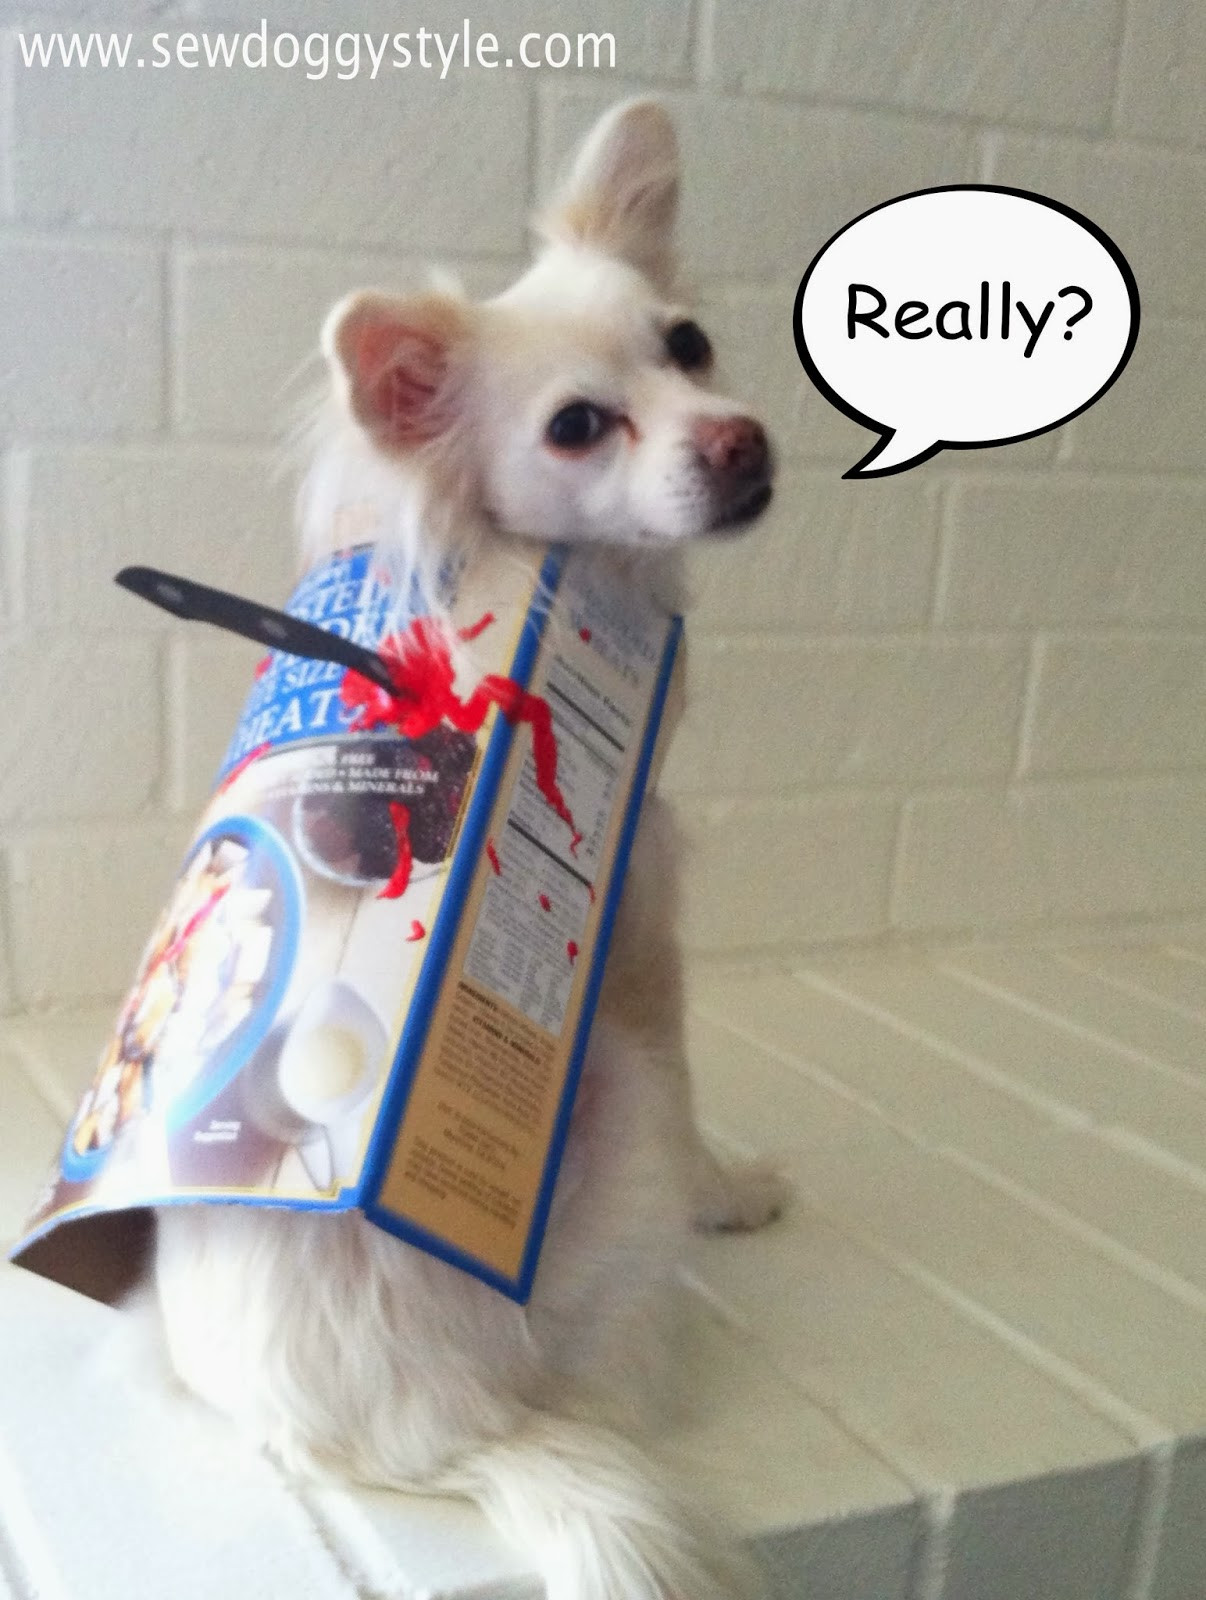 DIY Halloween Costume For Dogs  Sew DoggyStyle Last Minute DIY Halloween Costume Cereal